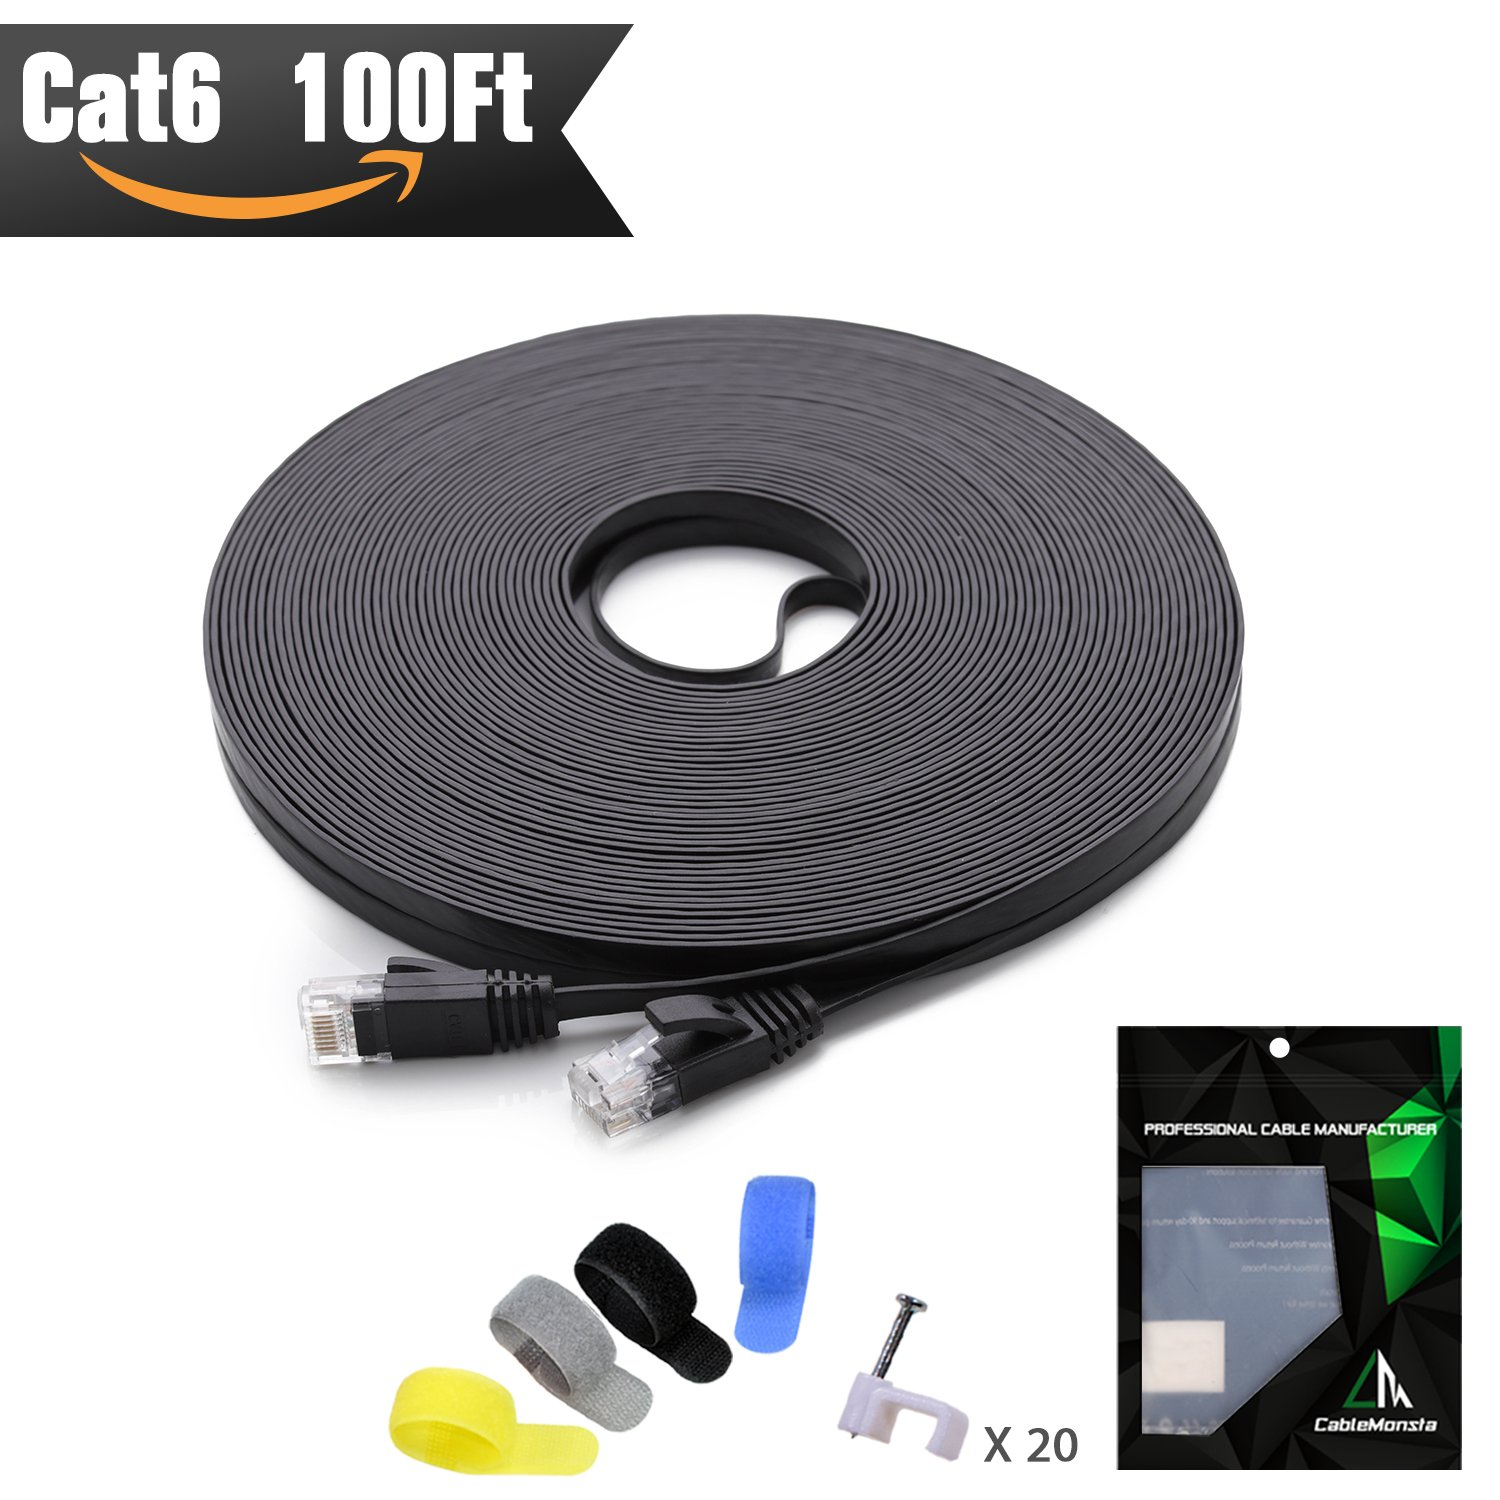 Cat 6 Ethernet Cable 100 ft (at a Cat5e Price but Higher Bandwidth) Flat Internet Network Cable - Cat6 Ethernet Patch Cable Short - Black Computer LAN Cable + Free Cable Clips Straps